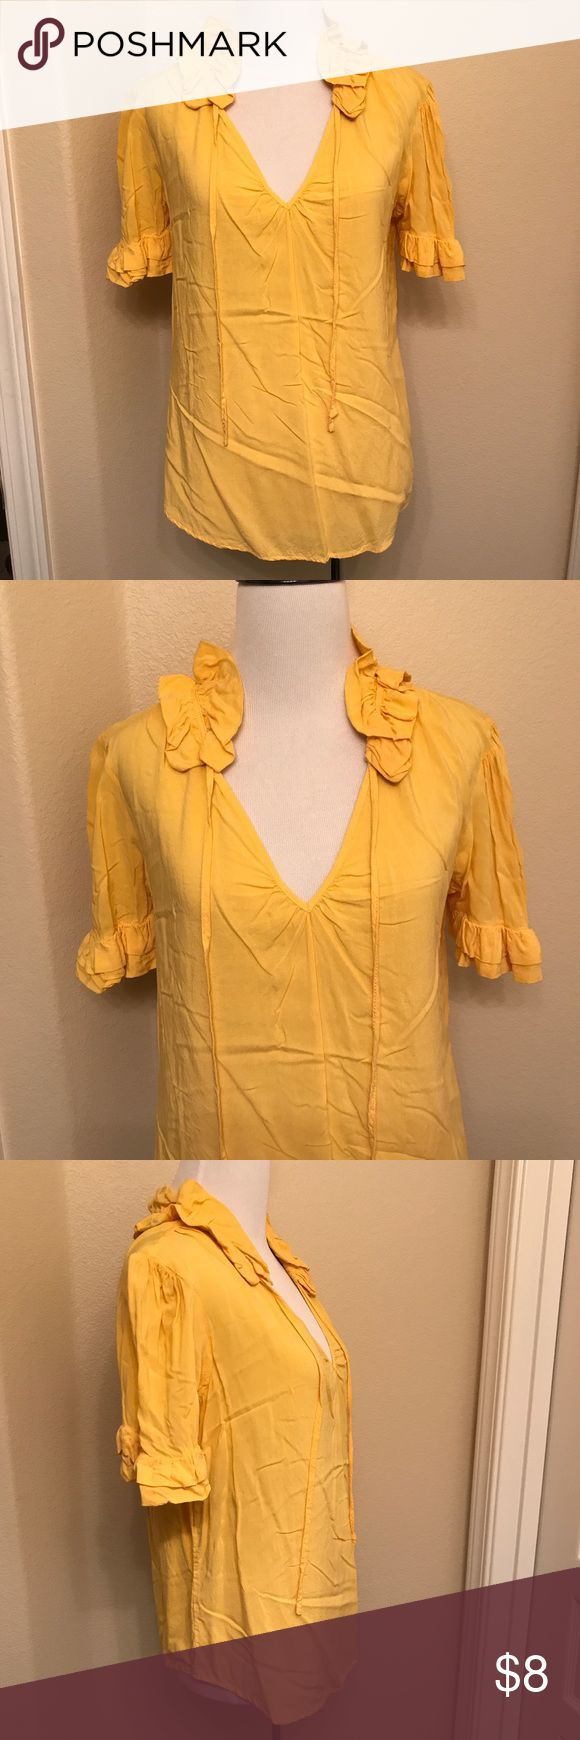 ❤️3 FOR $10 SALE❤️ Ruffle Trim Top Ruffle collar and sleeve yellow top. Overall wear visible, but no holes or stains. Needs to be steamed or ironed. Tops Blouses